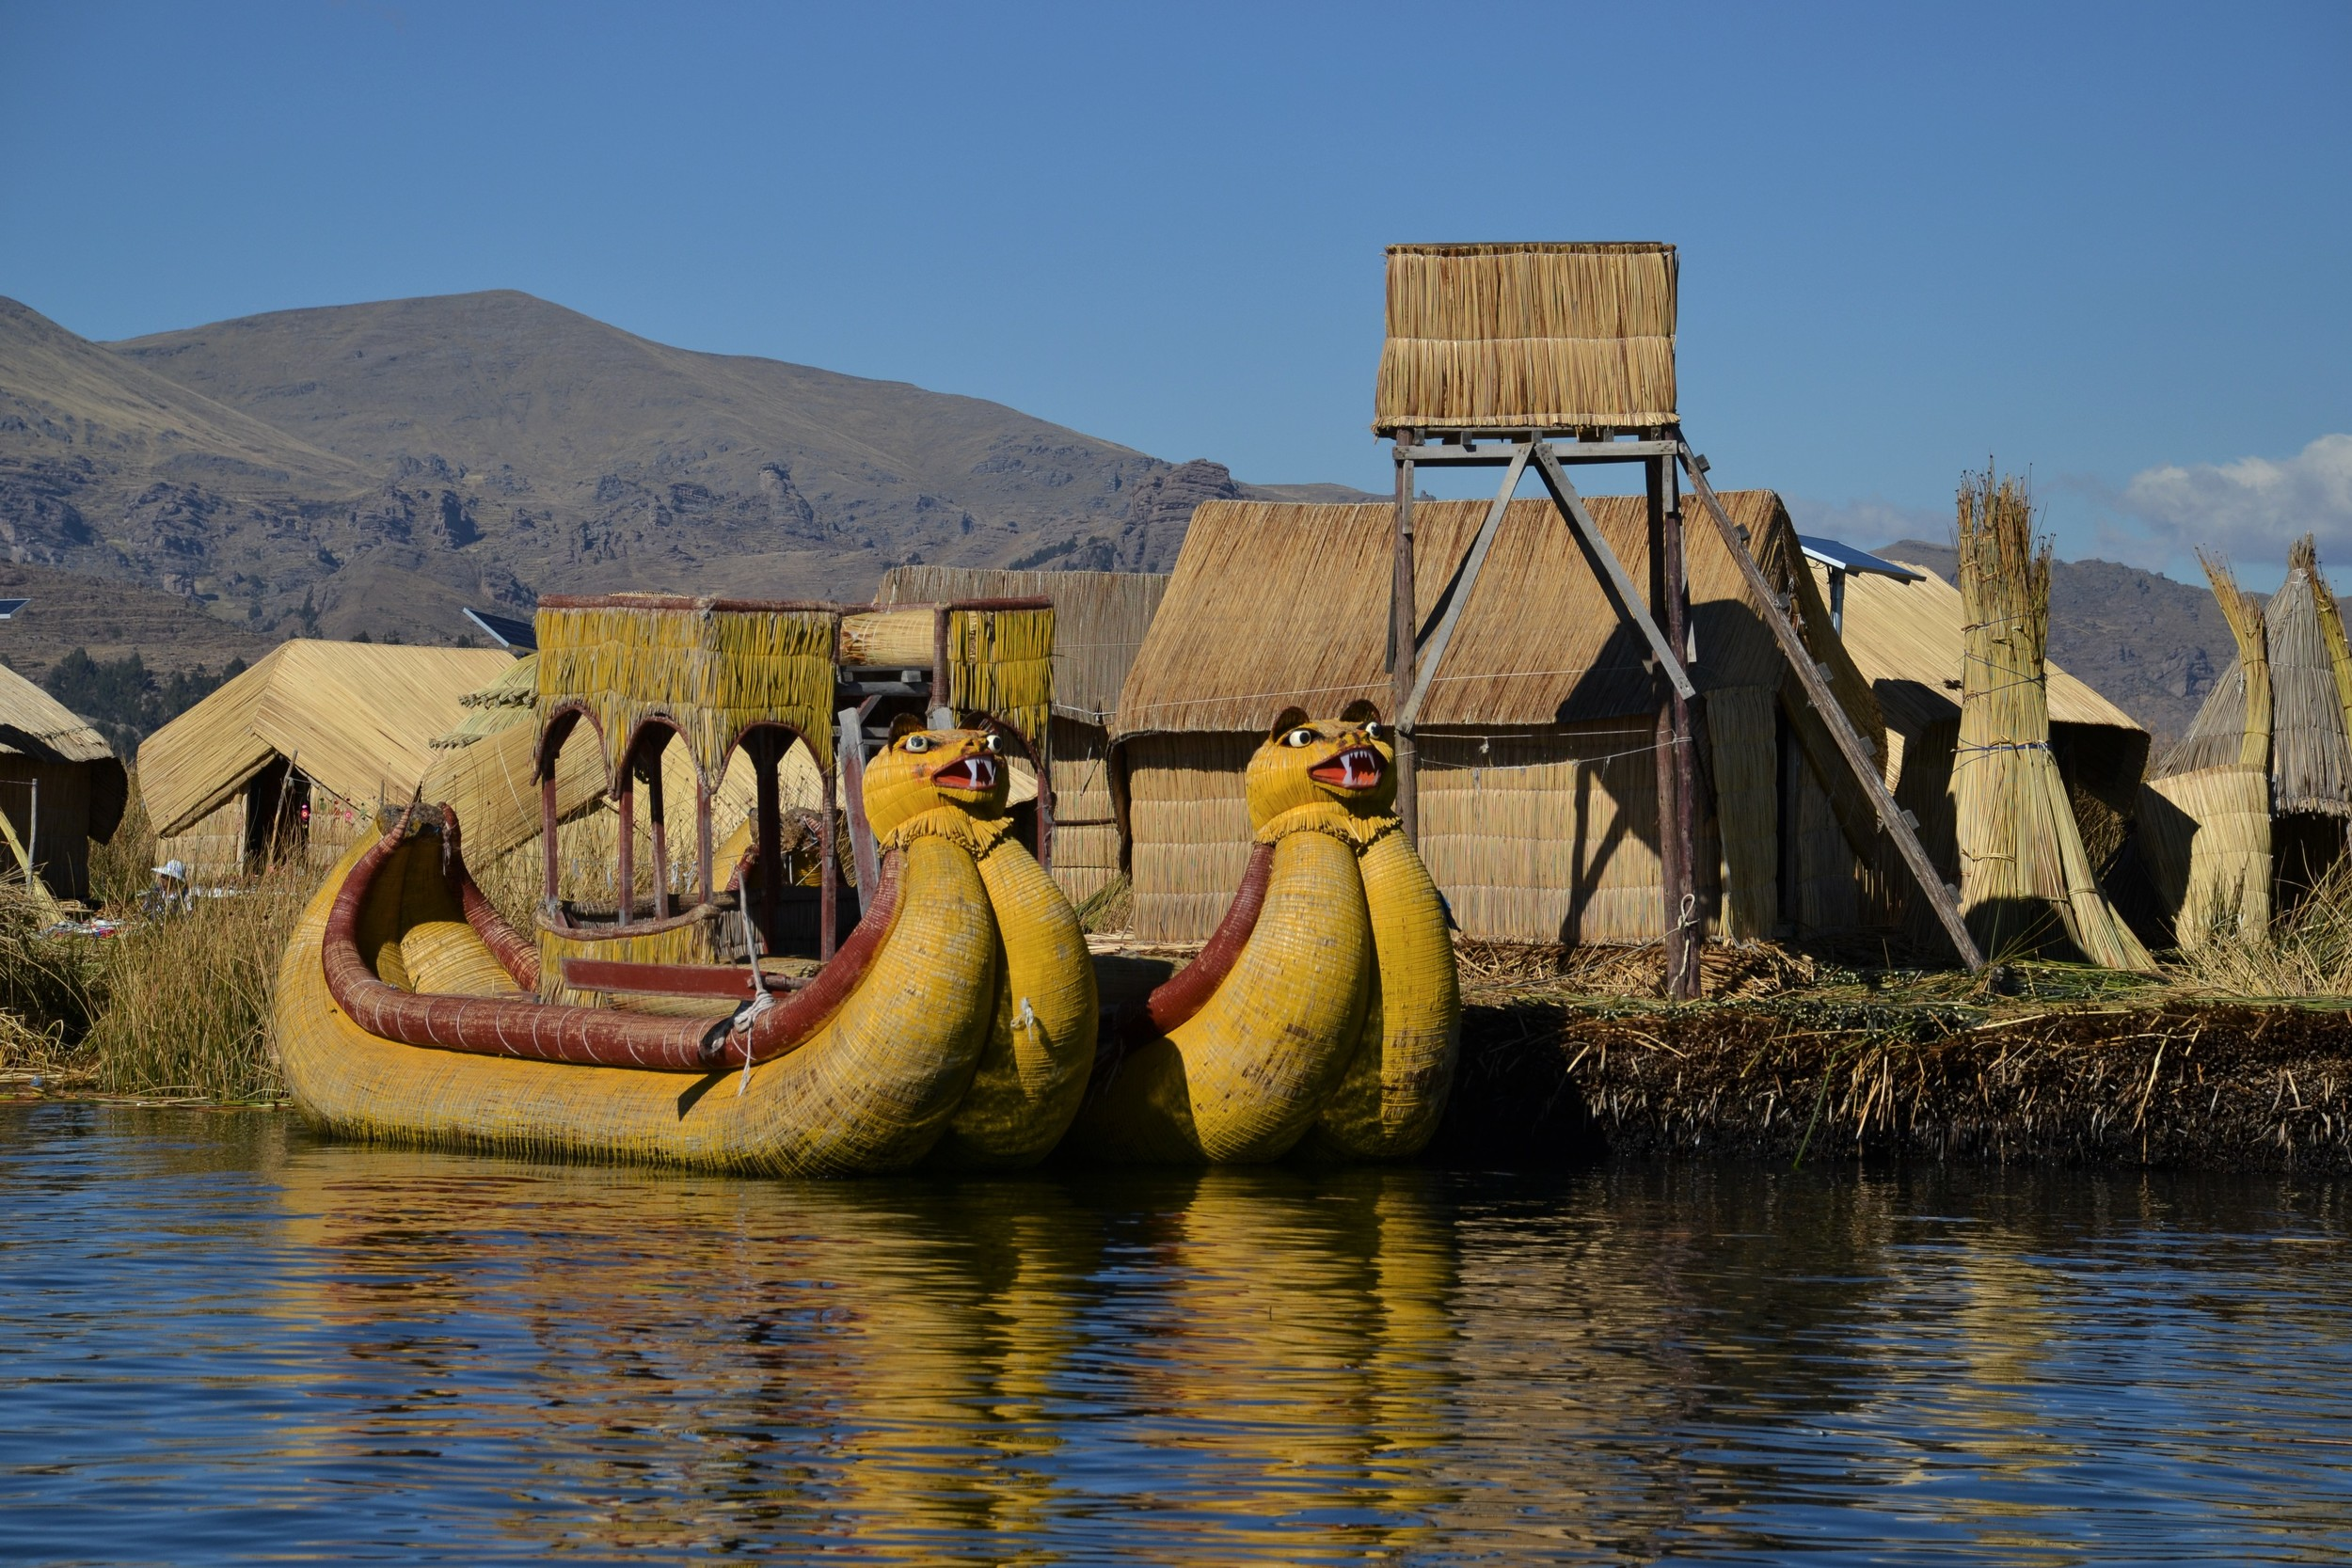 The Floating Islands of Lake Titicaca, and a traditional reed boat.